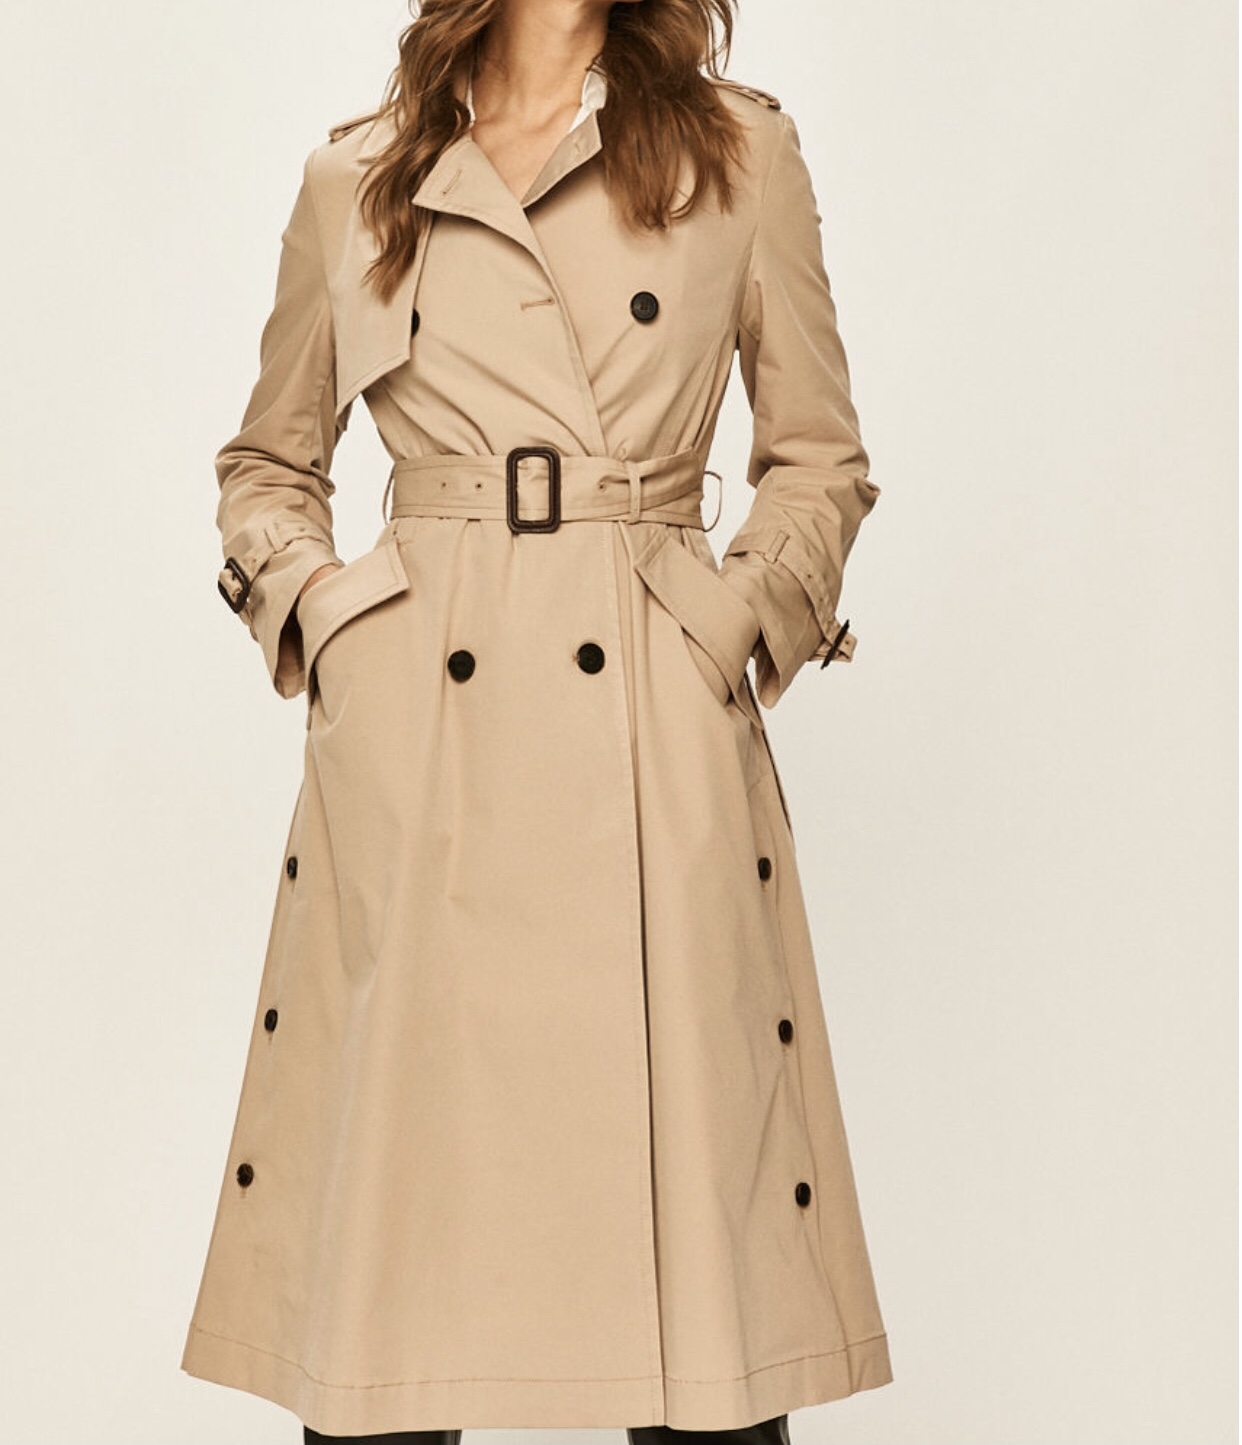 Trench m/l